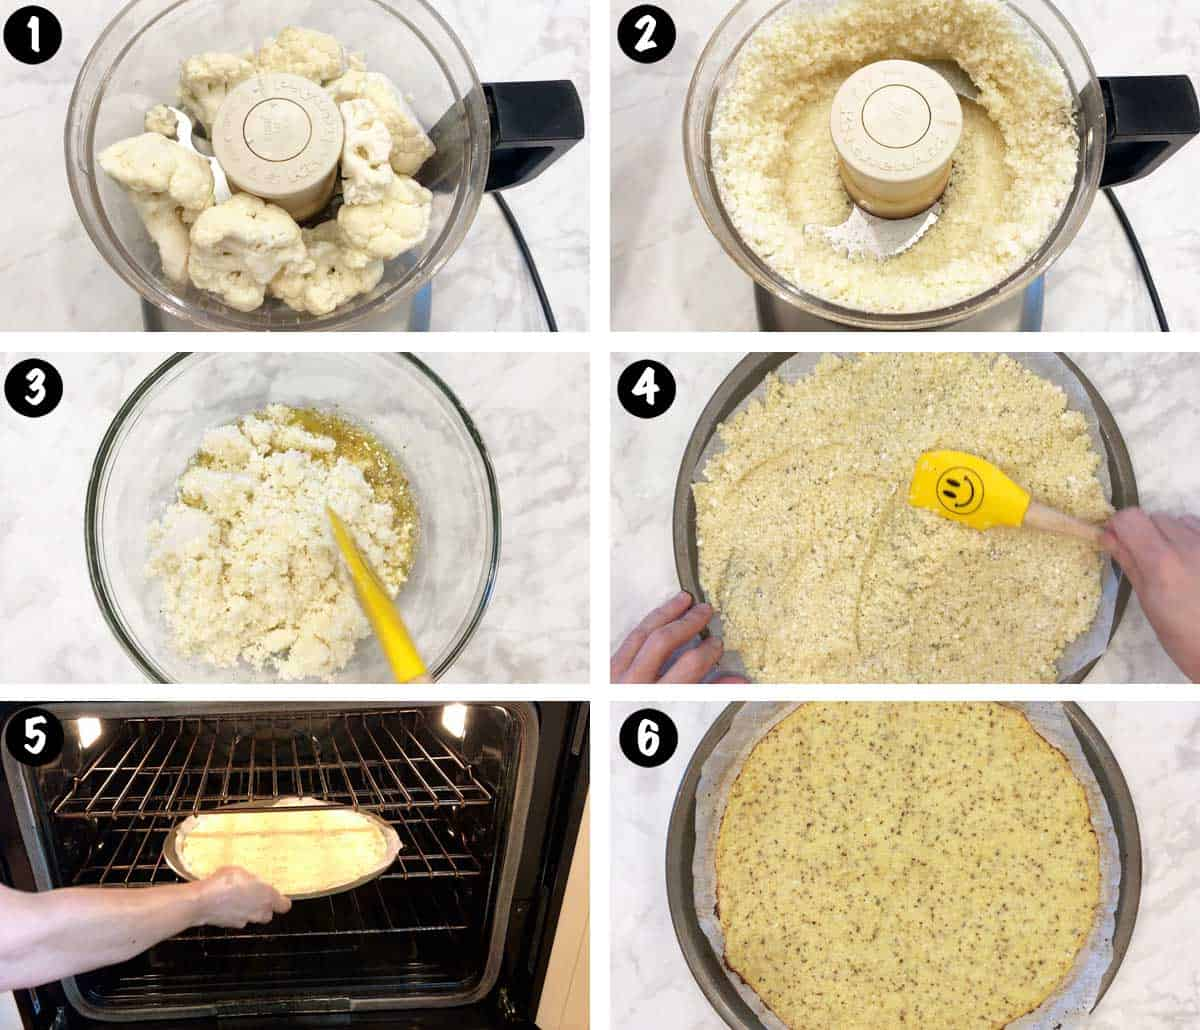 A photo collage showing steps 1-6 for making a cauliflower pizza crust.